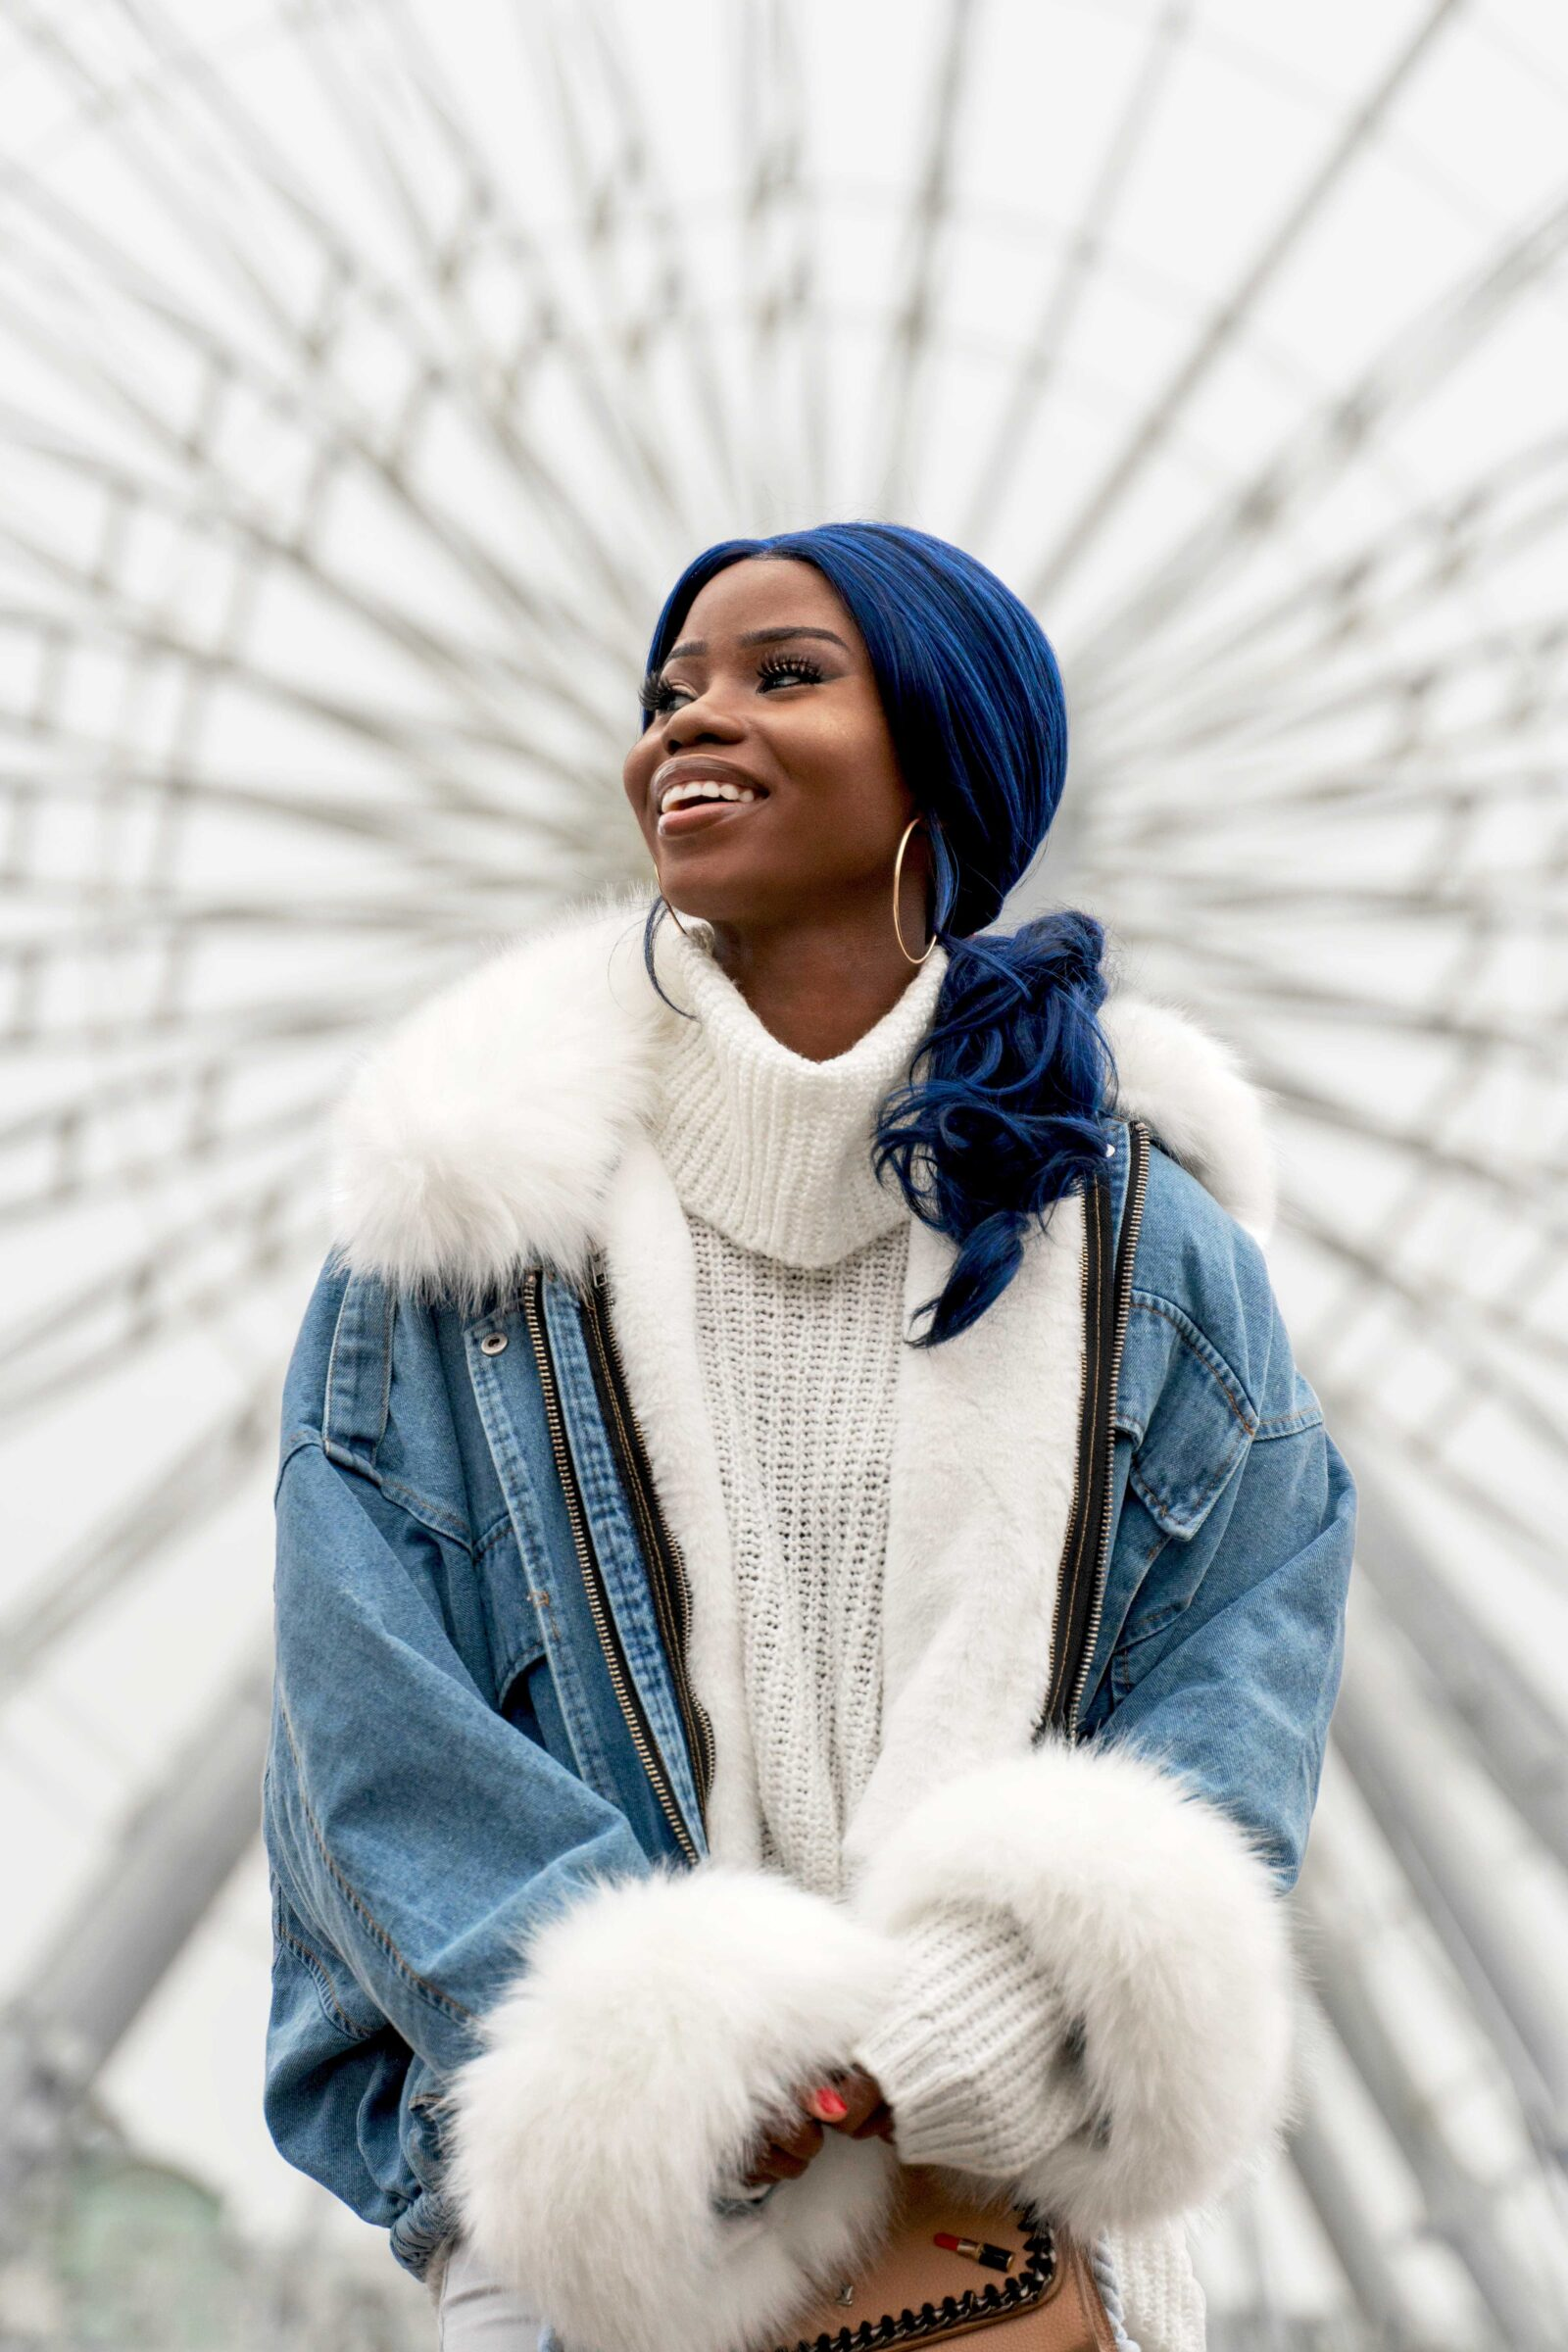 Brown skin girl with wavy deep blue hair and white turtleneck under opened jean jacket against a white background